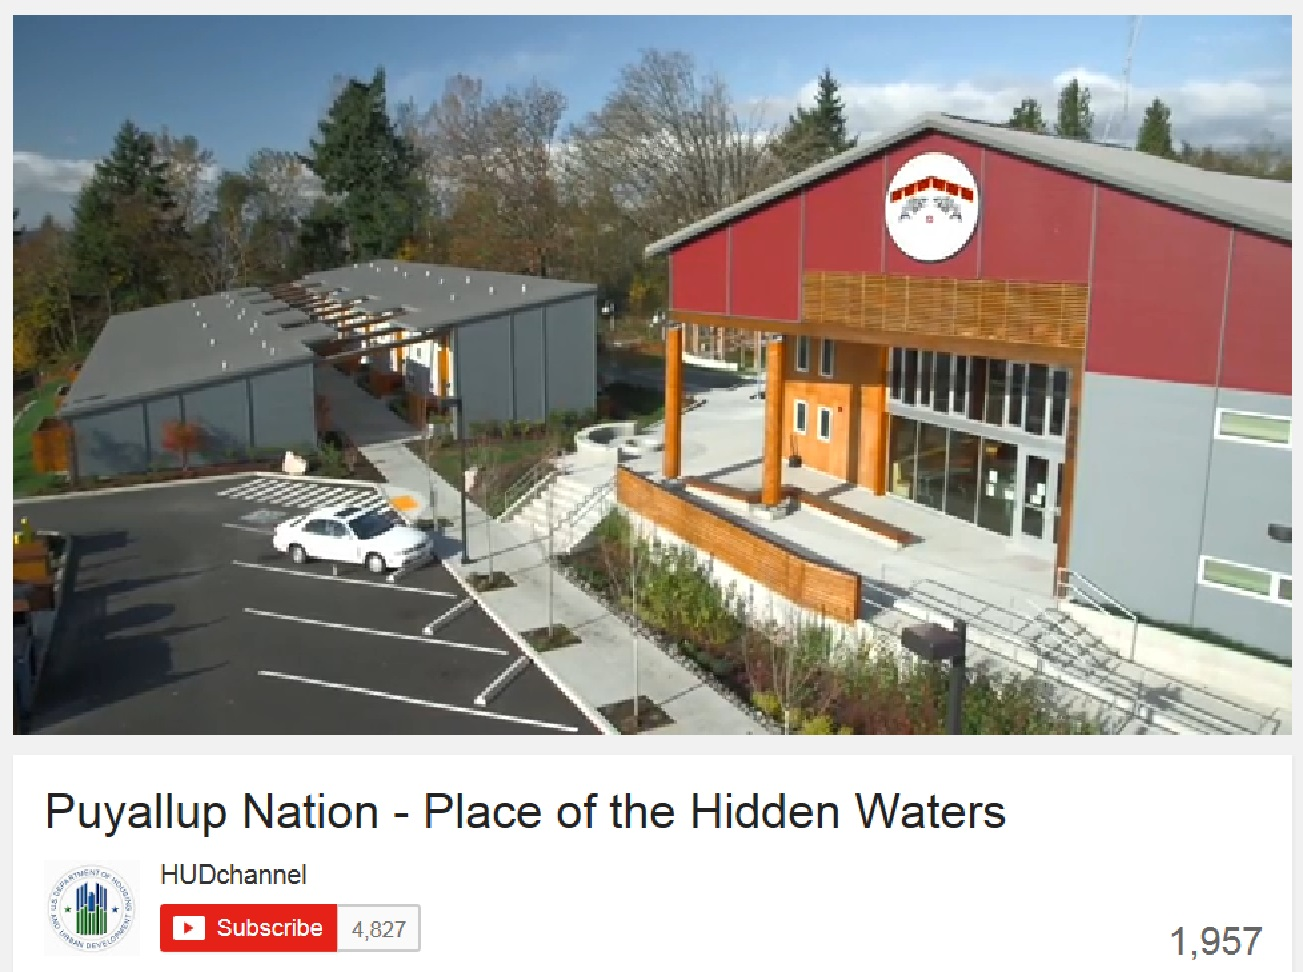 Puyallup Nation s Place of the Hidden Waters